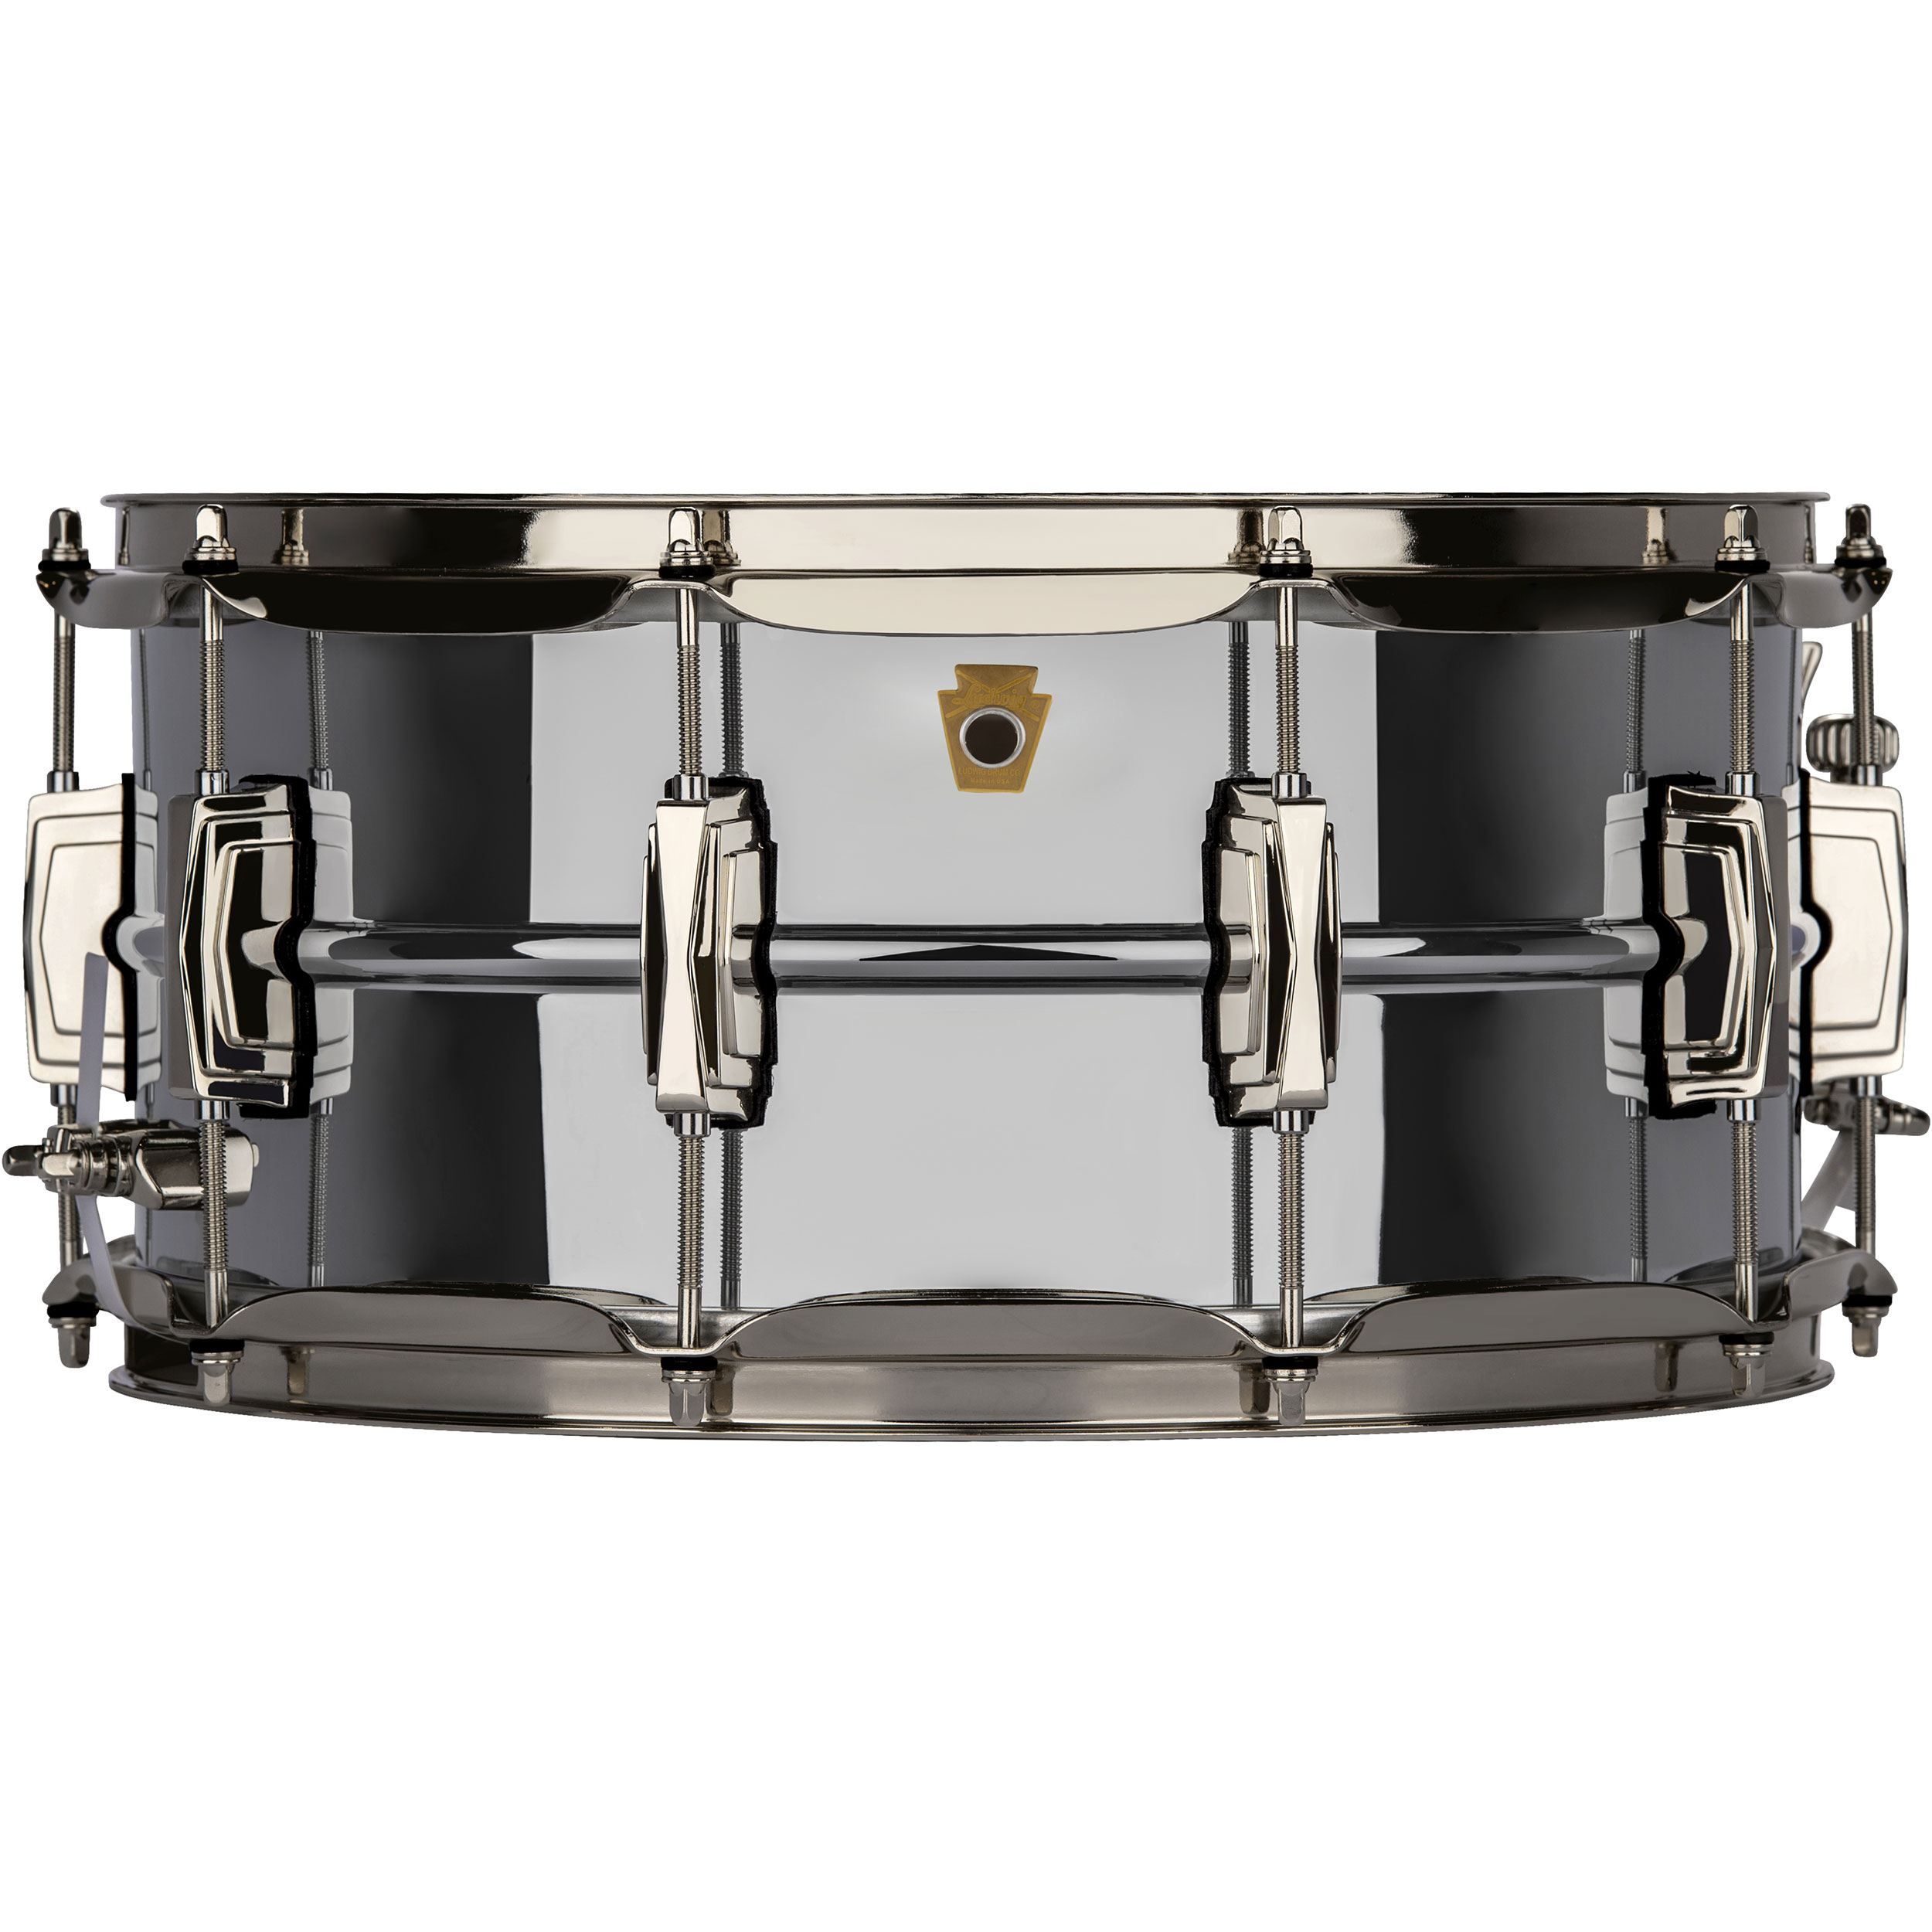 "Ludwig 6.5"" x 14"" Chrome Plated Brass ""Super Ludwig"" Snare Drum with Nickel Hardware"